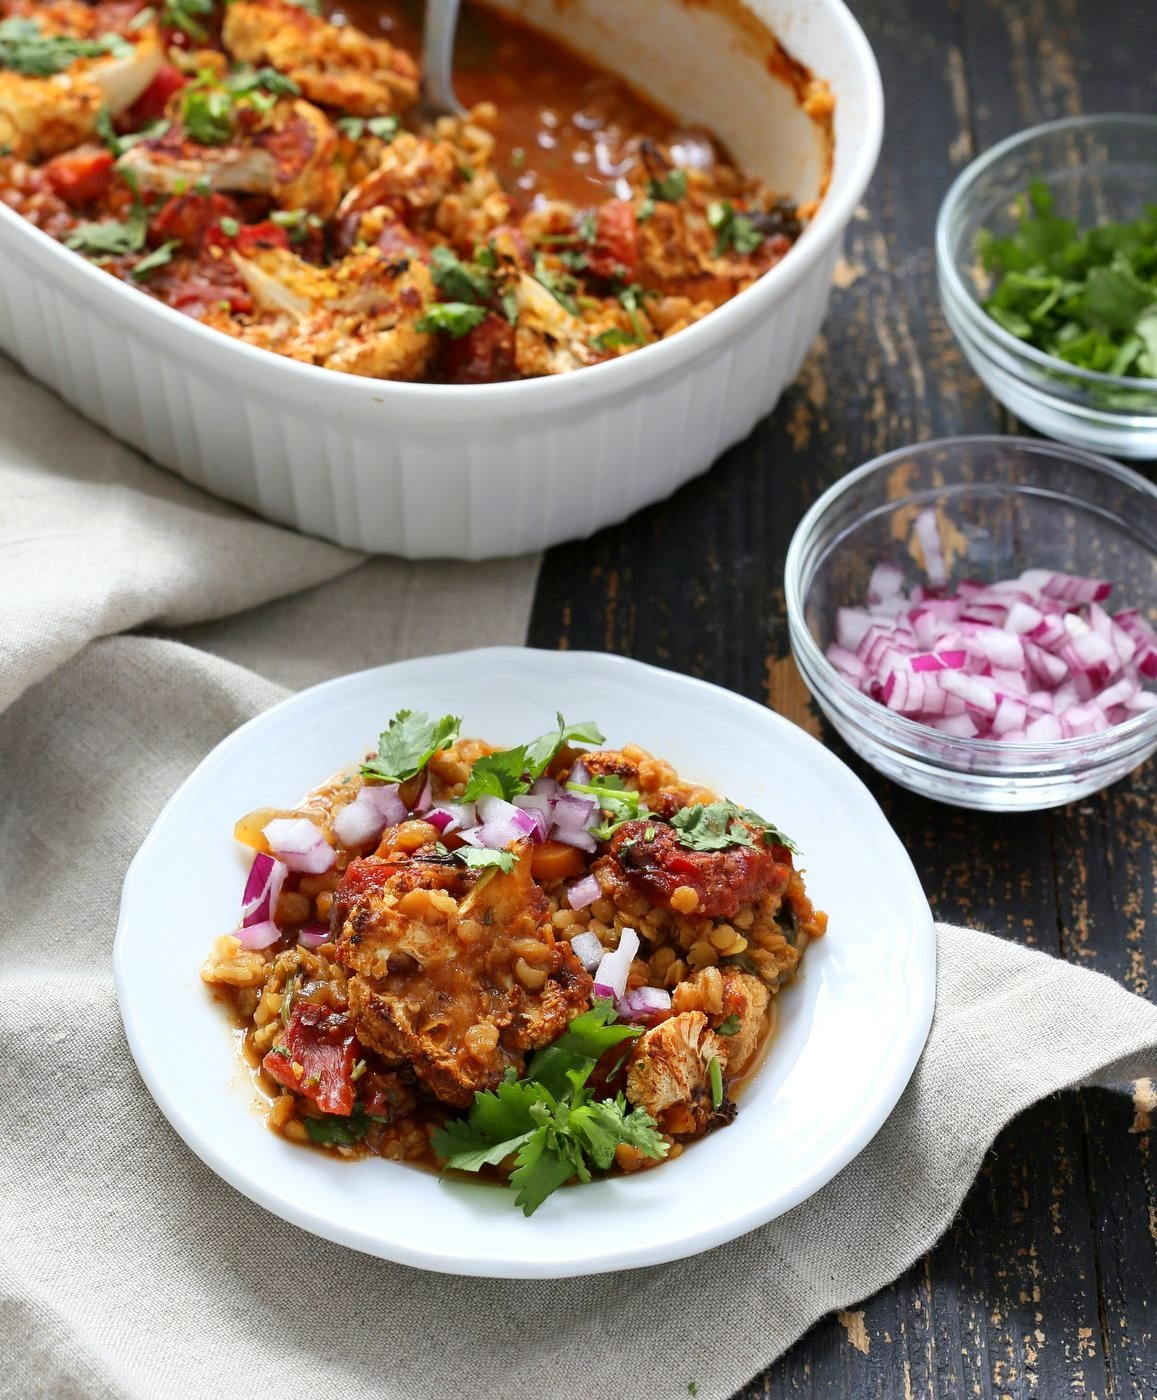 BBQ Lentil Farro Cauliflower Casserole. BBQ Casserole with Red Lentils, Farro, Veggies, Spinach, Cauliflower all layered and baked. Amazing Flavors! #Vegan #Glutenfree #Nutfree #Recipe. Can be soyfree #veganricha | VeganRicha.com